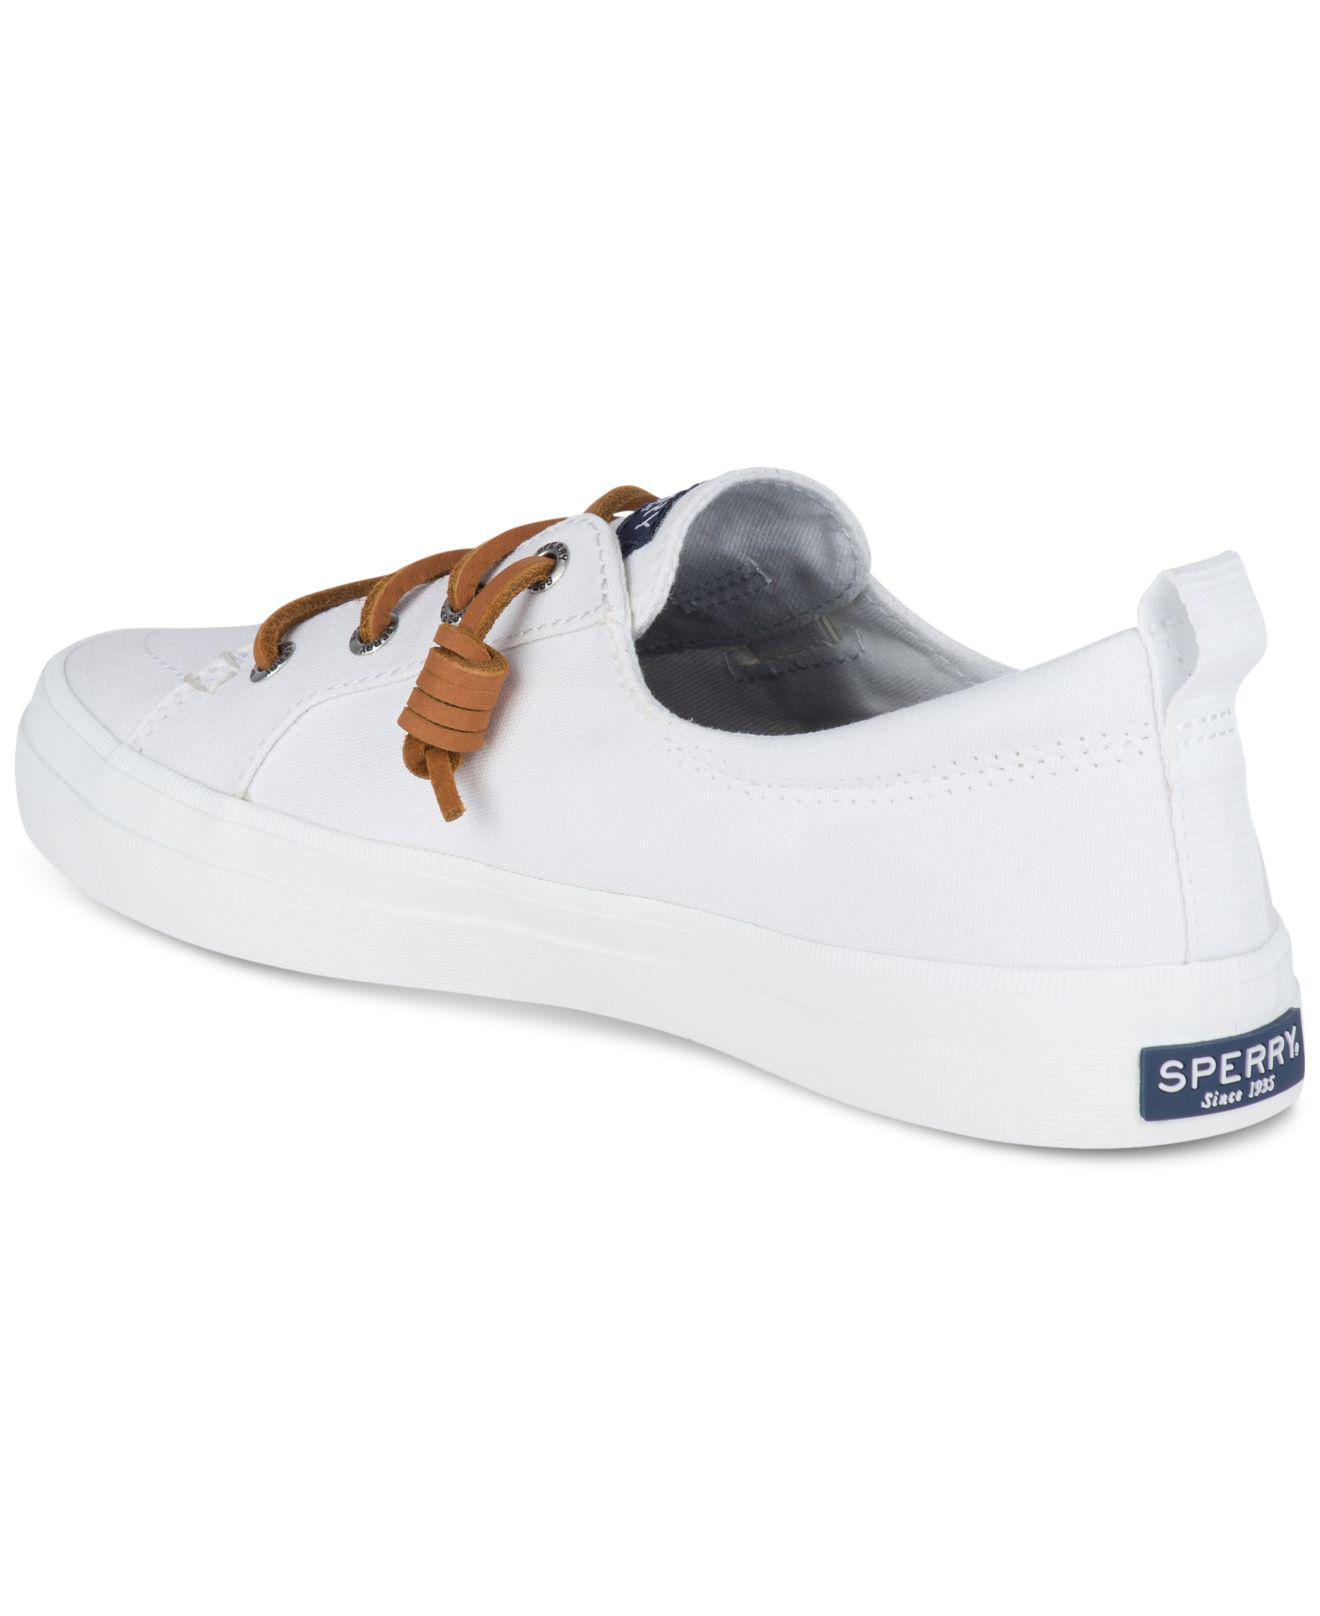 f6064f74ba Sperry Top-Sider Women's Crest Vibe Sneakers in White - Lyst